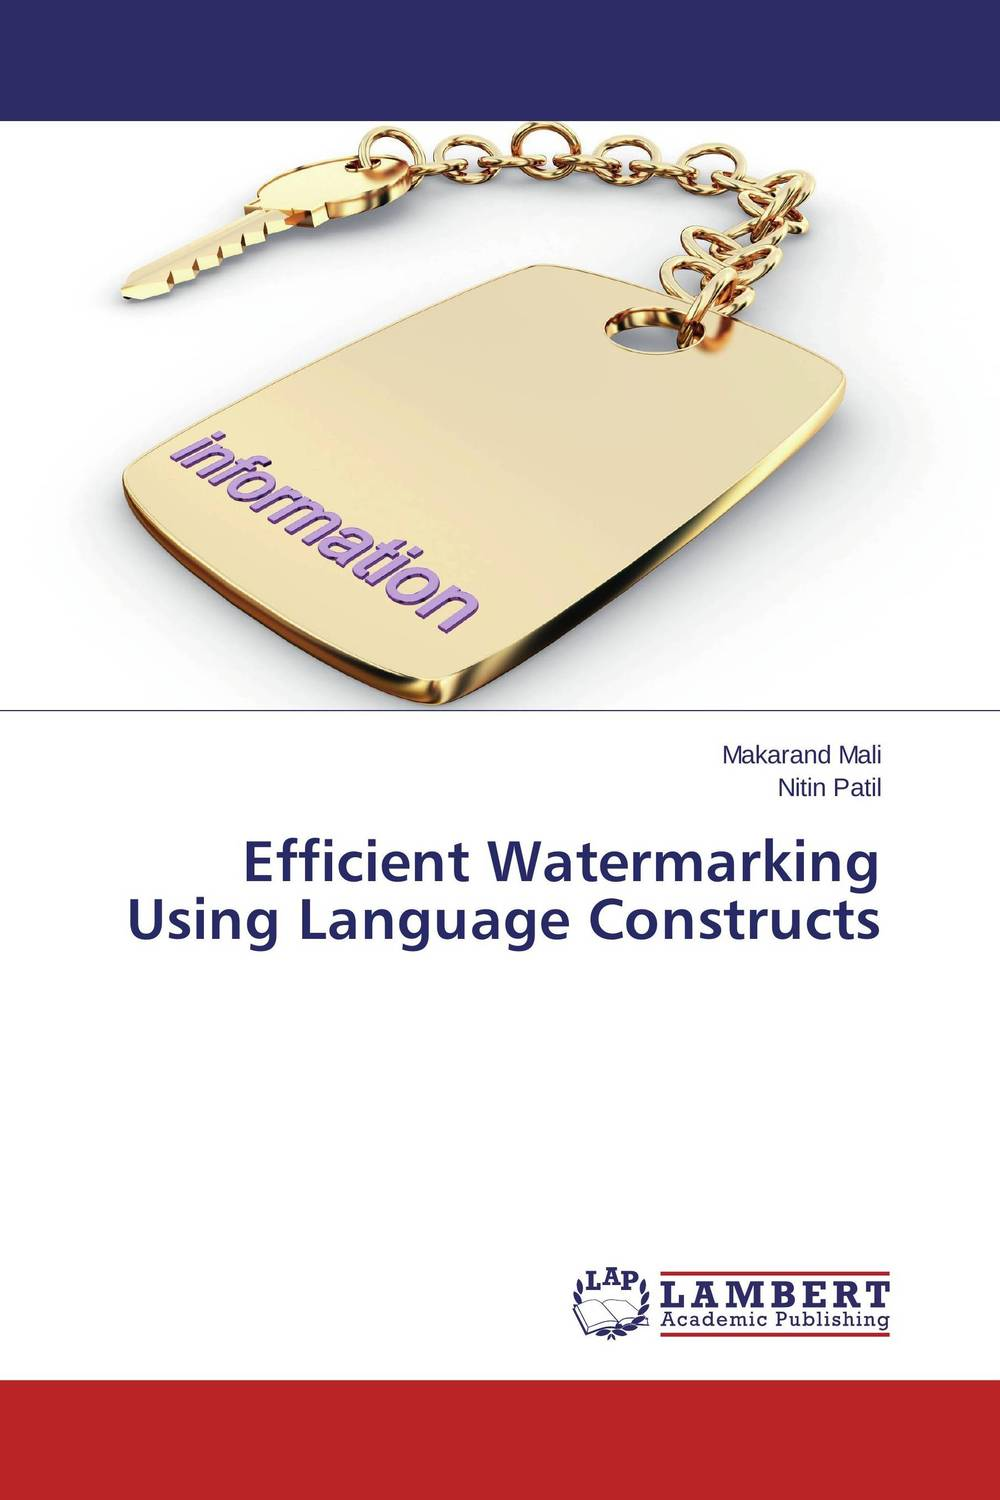 Efficient Watermarking Using Language Constructs image tamper detection using reversible watermarking